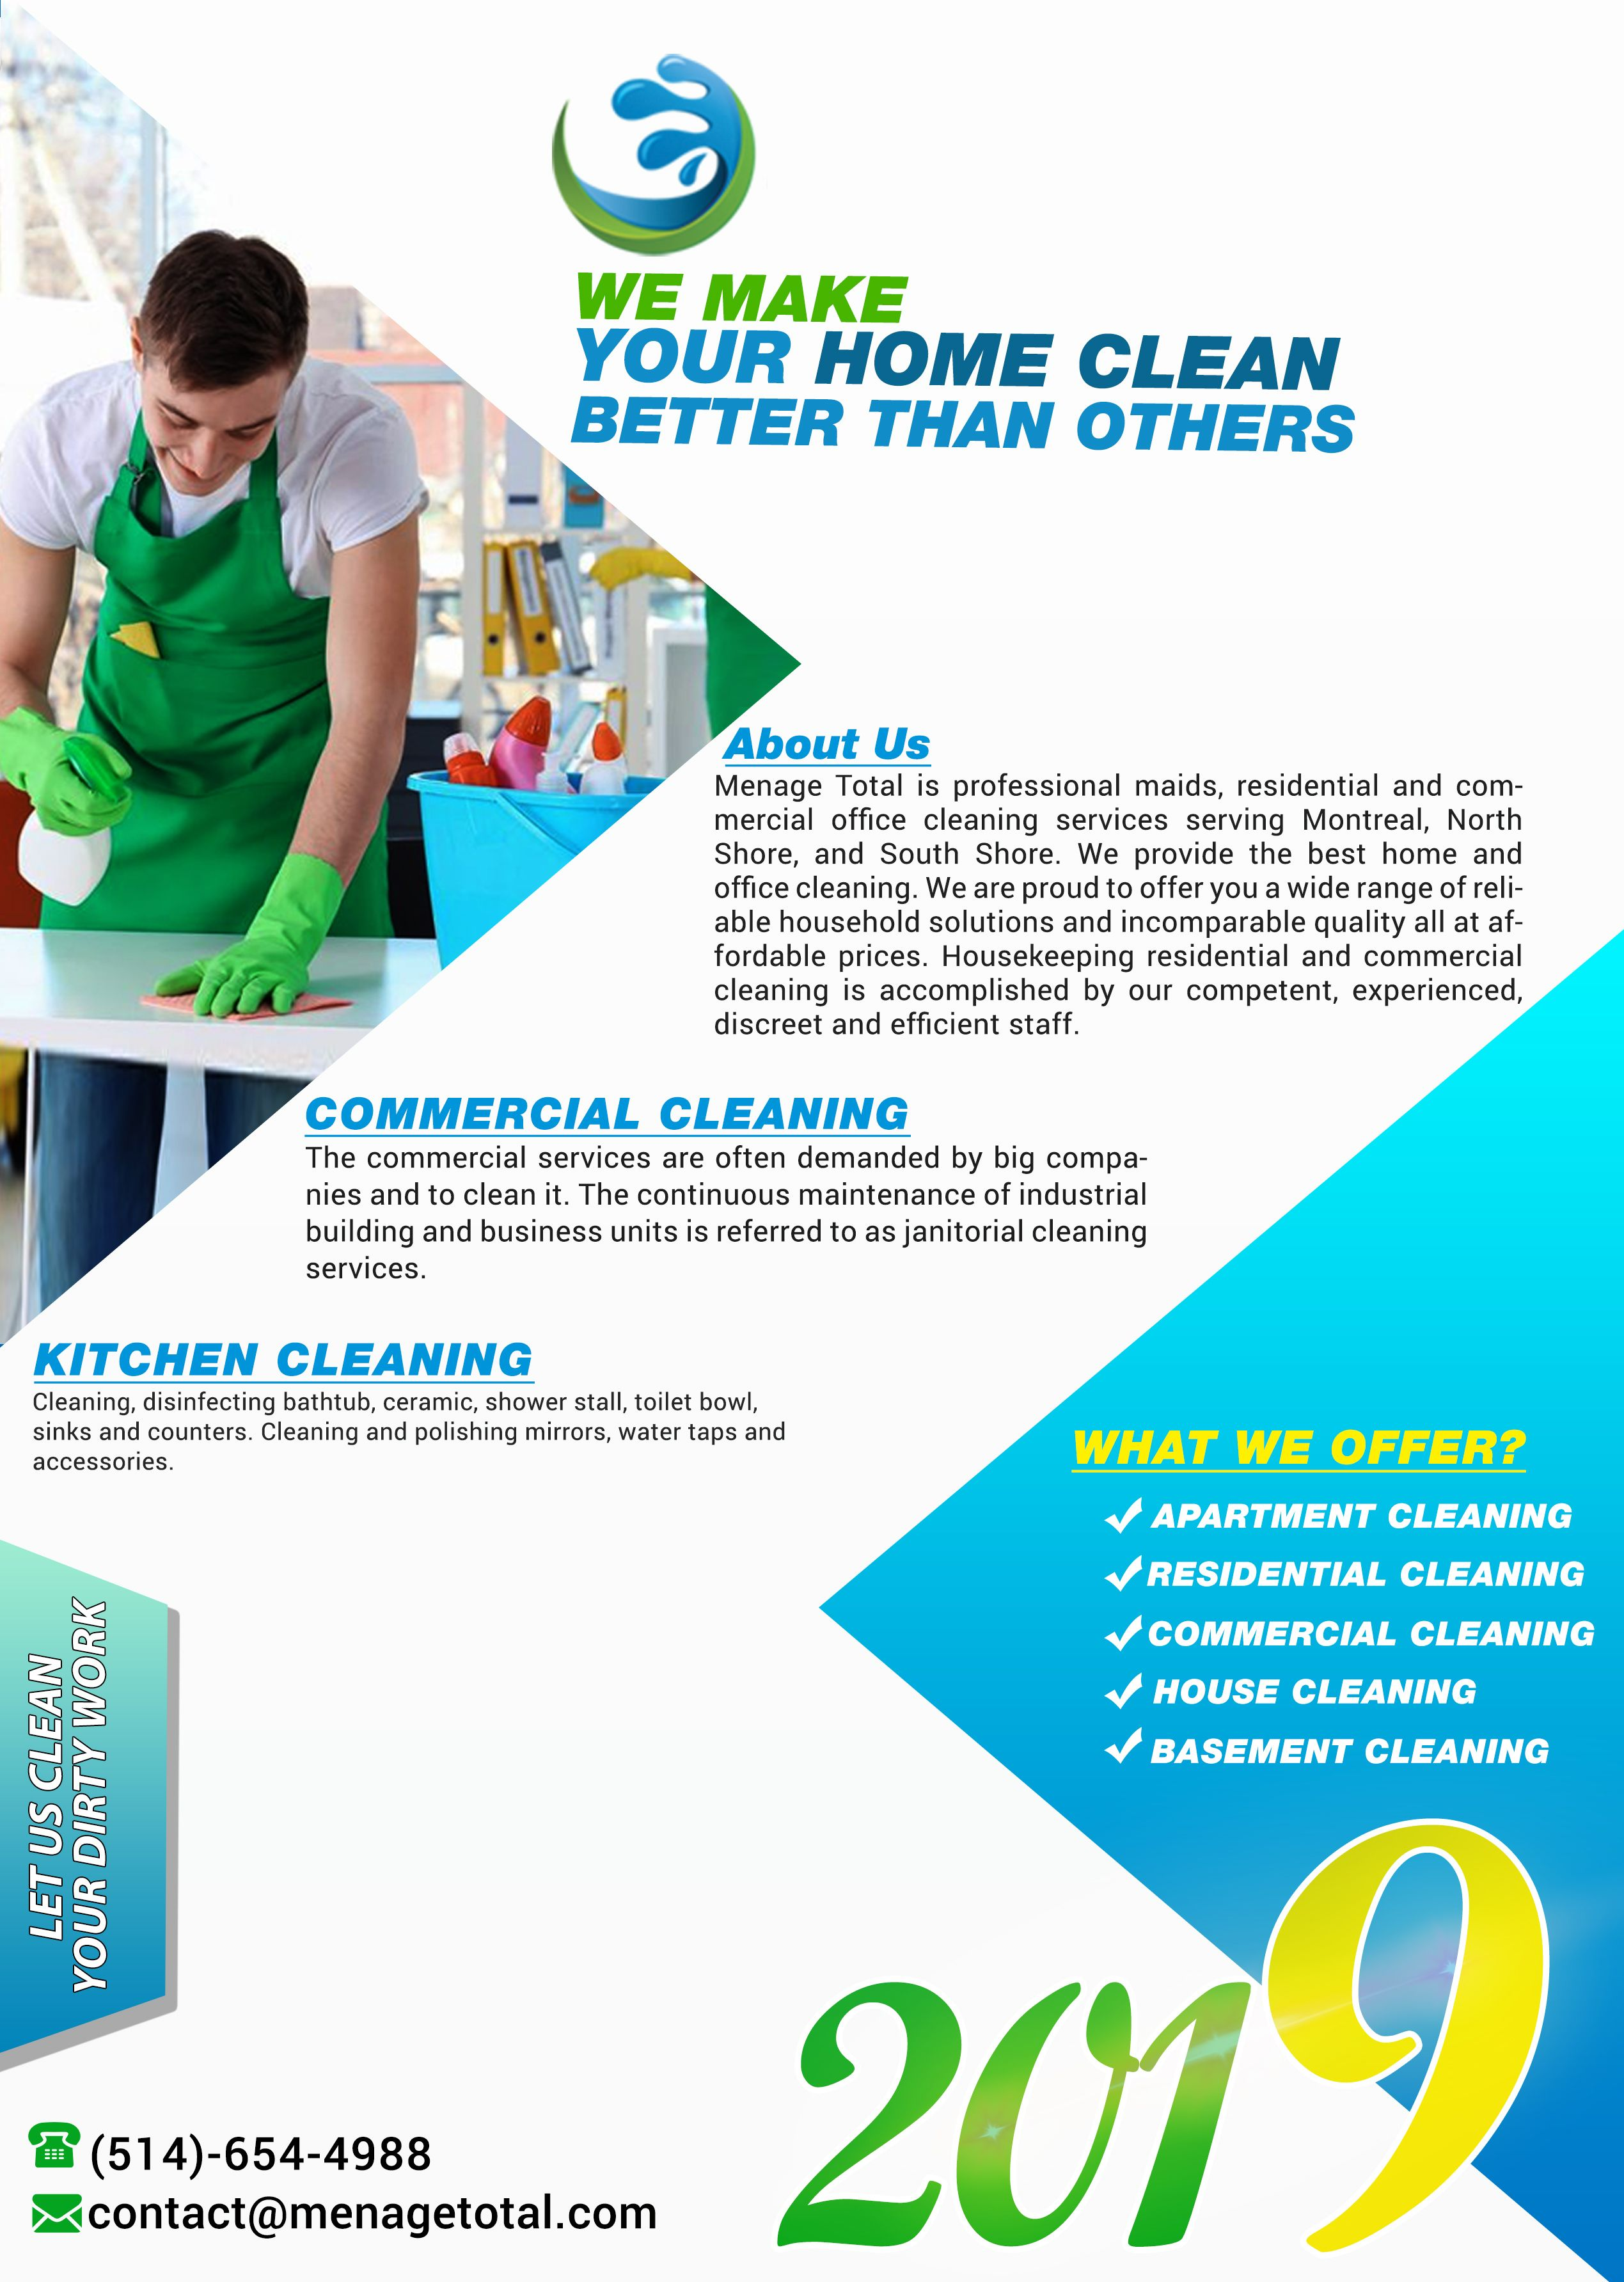 We Clean Your Home Handyman Business Cleaning Business Office Cleaning Services